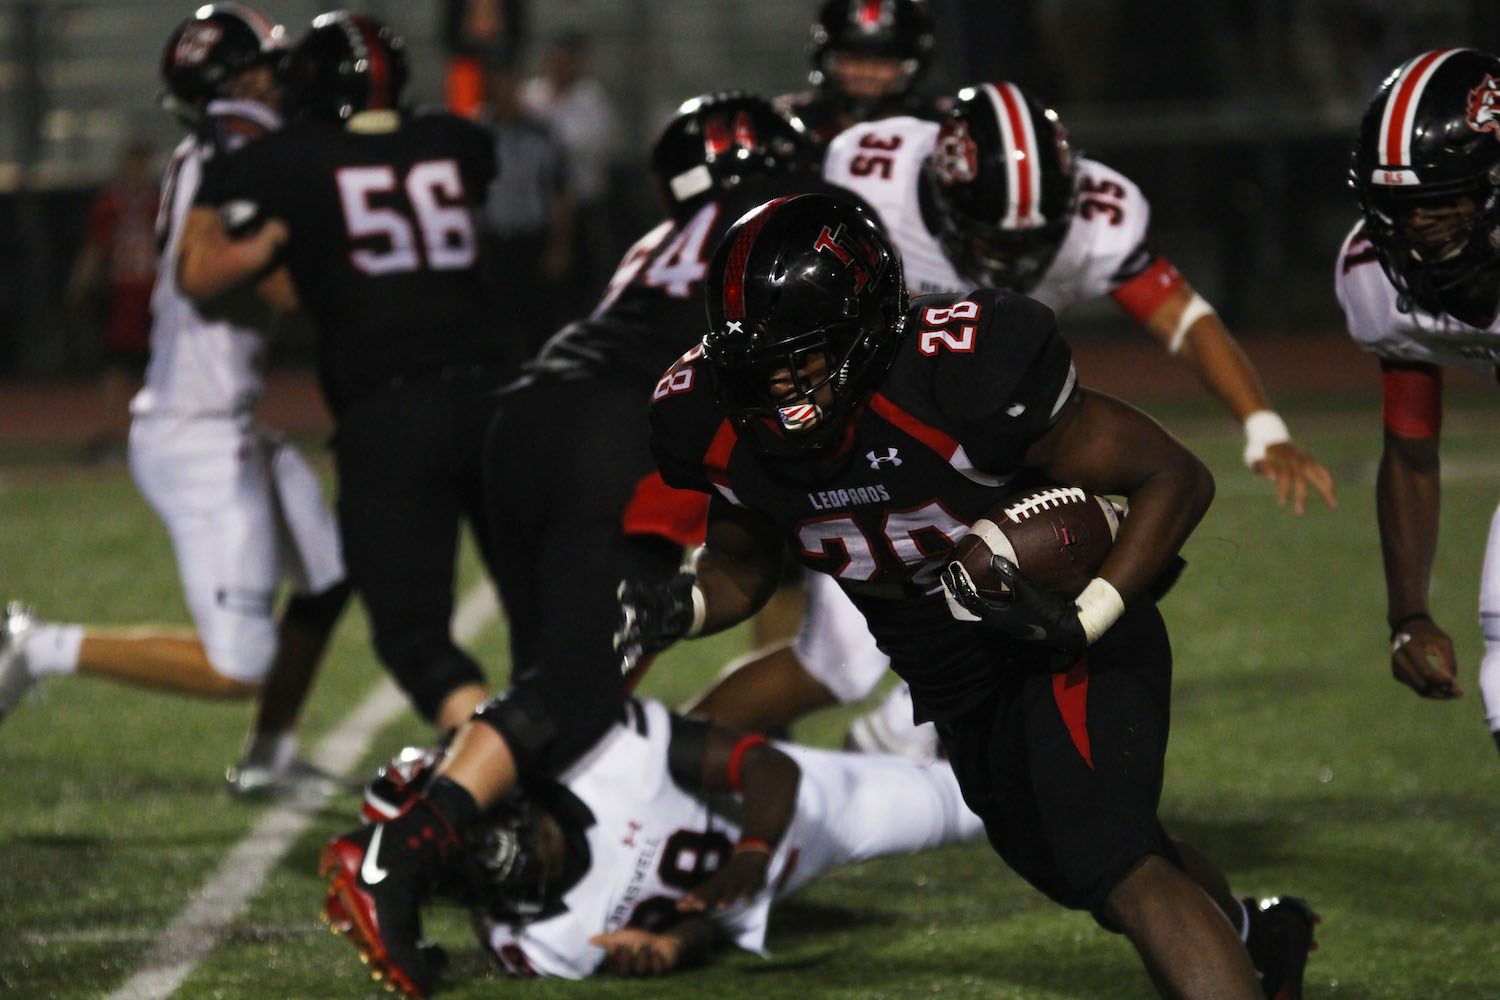 Senior running back Jahi Rainey looks to turn up field to reach the first down marker.